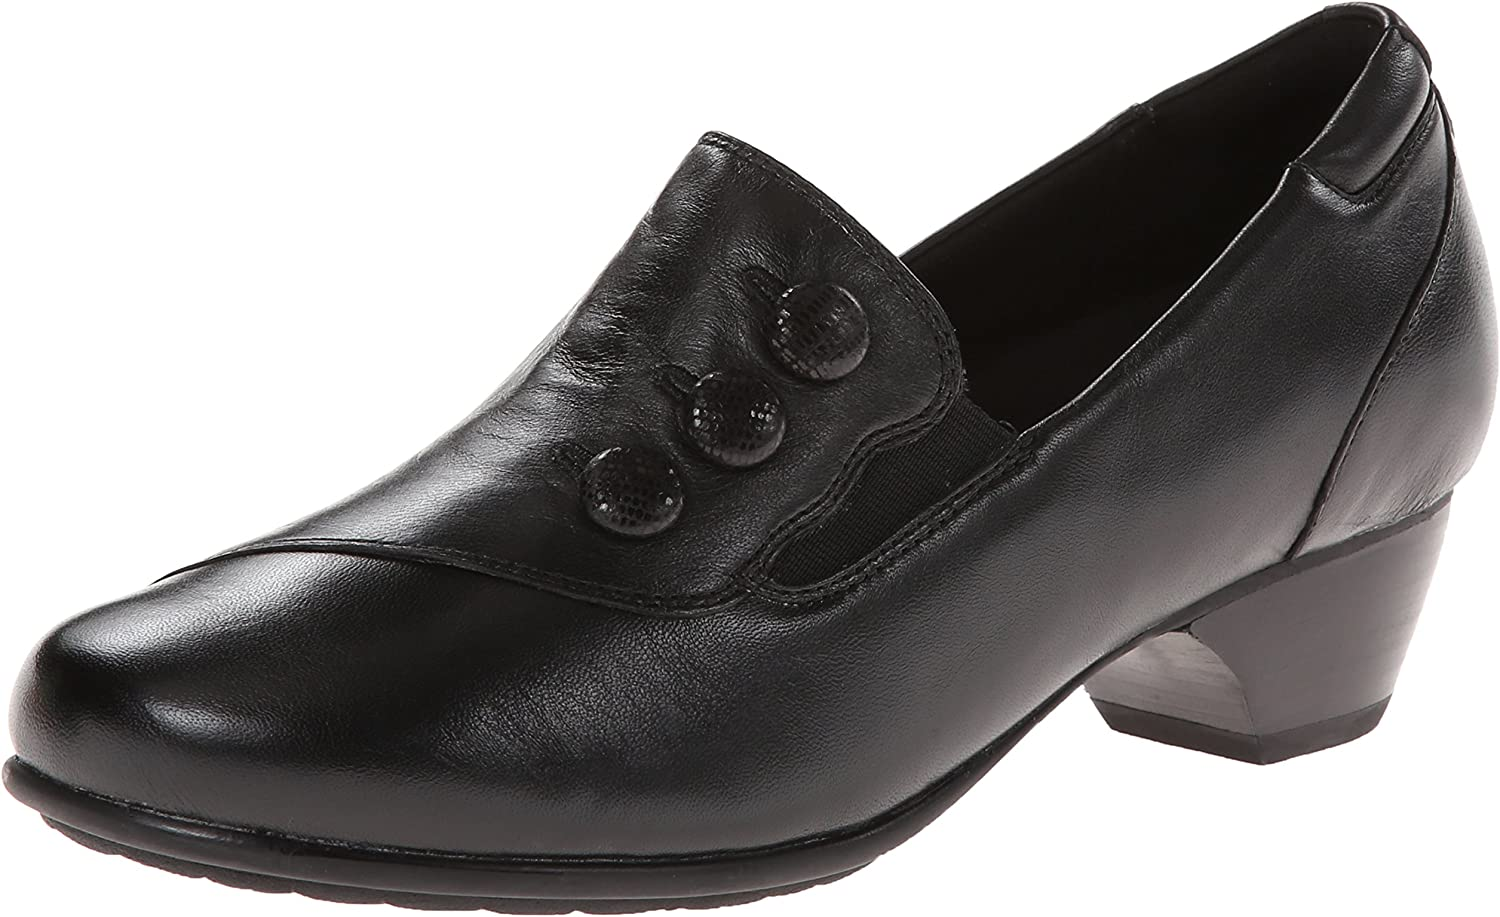 Aravon Women's Phyllis - AR Dress Pump